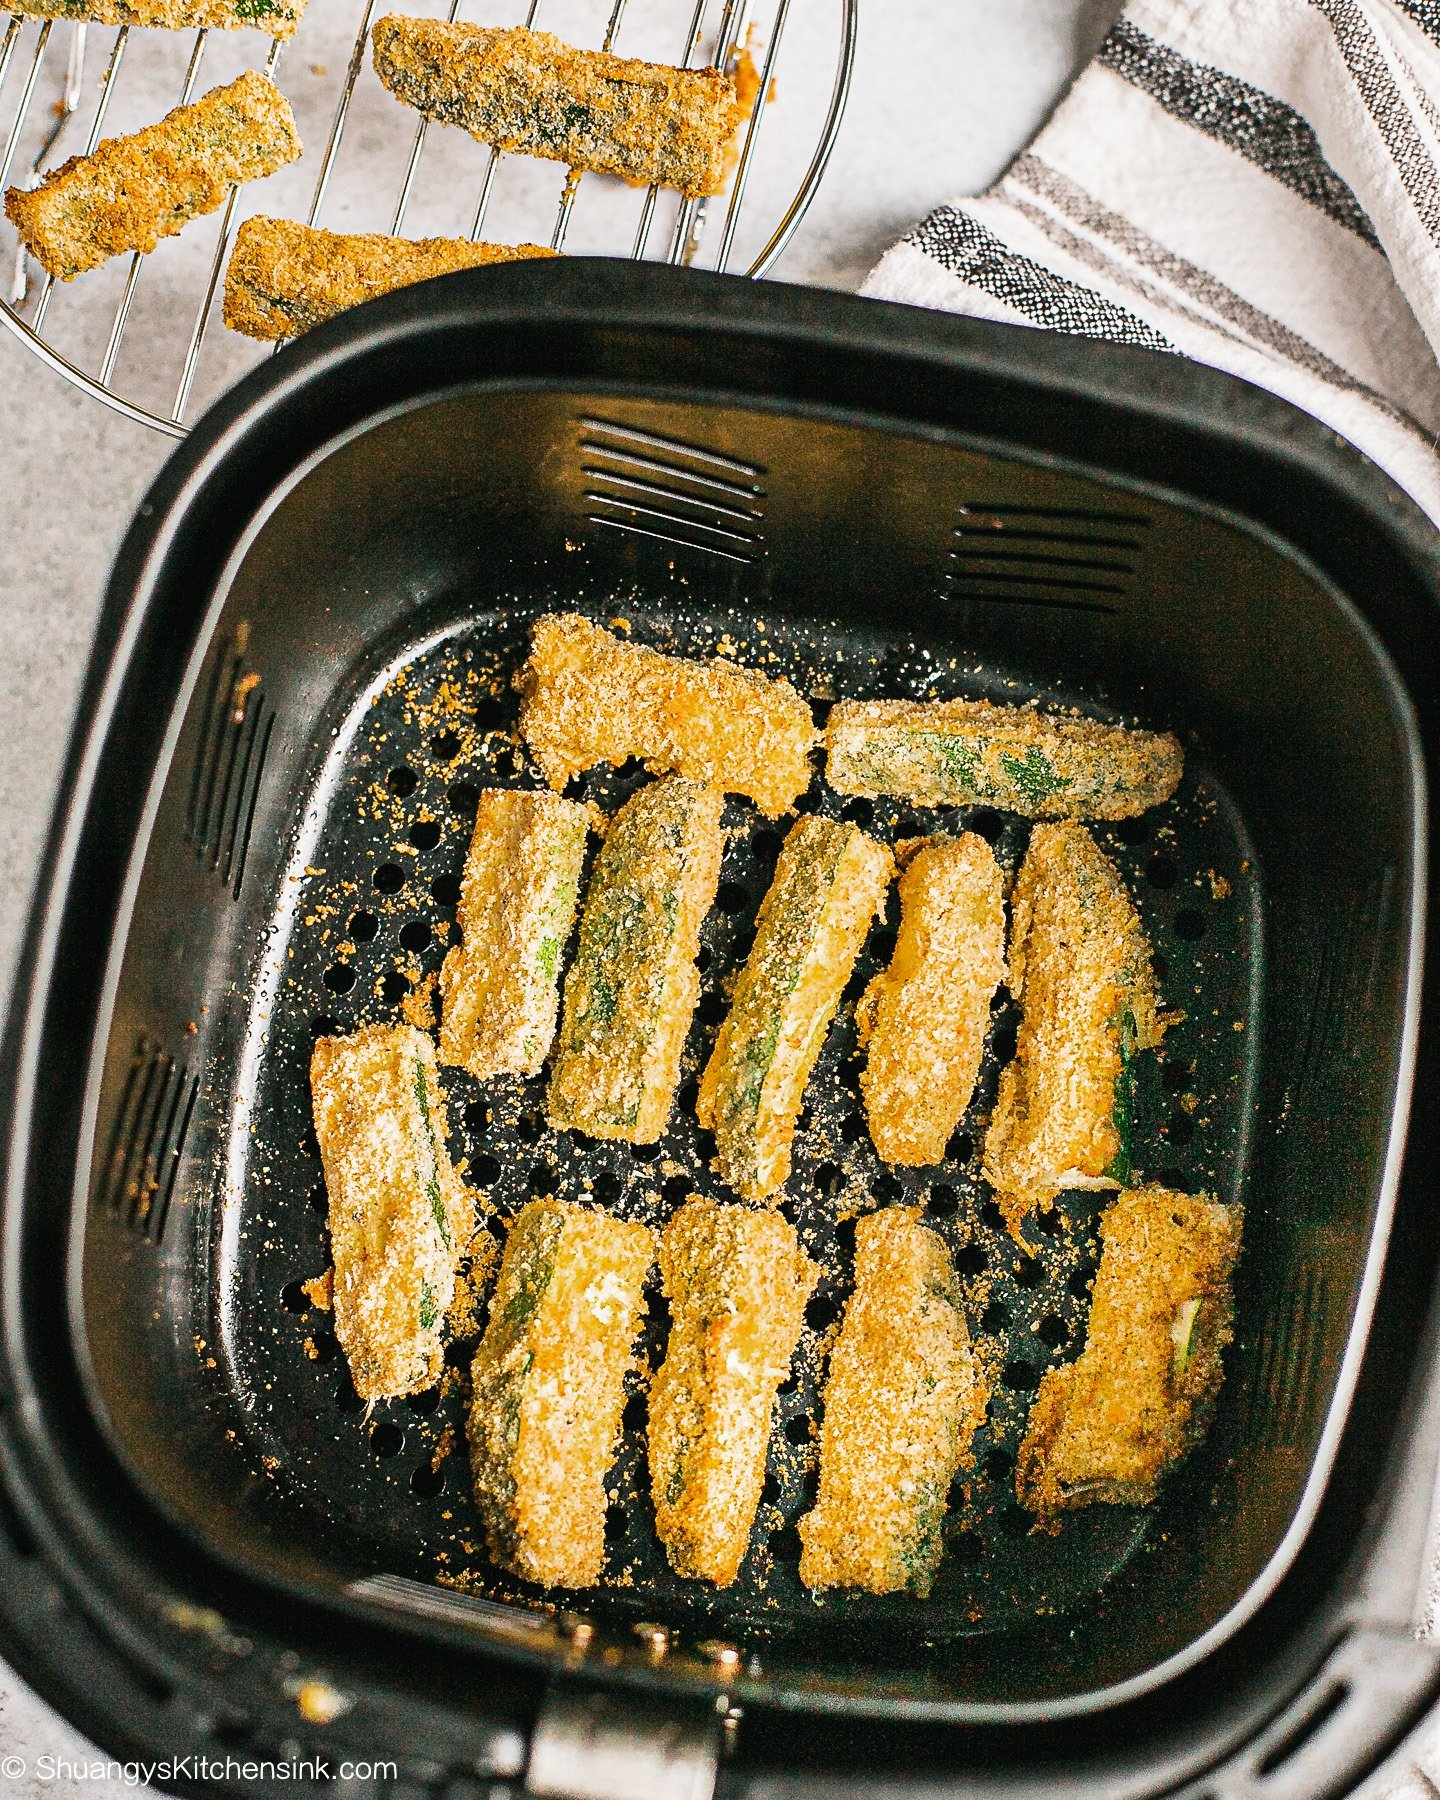 Veggies are being fried in an air fryer for a healthy alternative to french fries